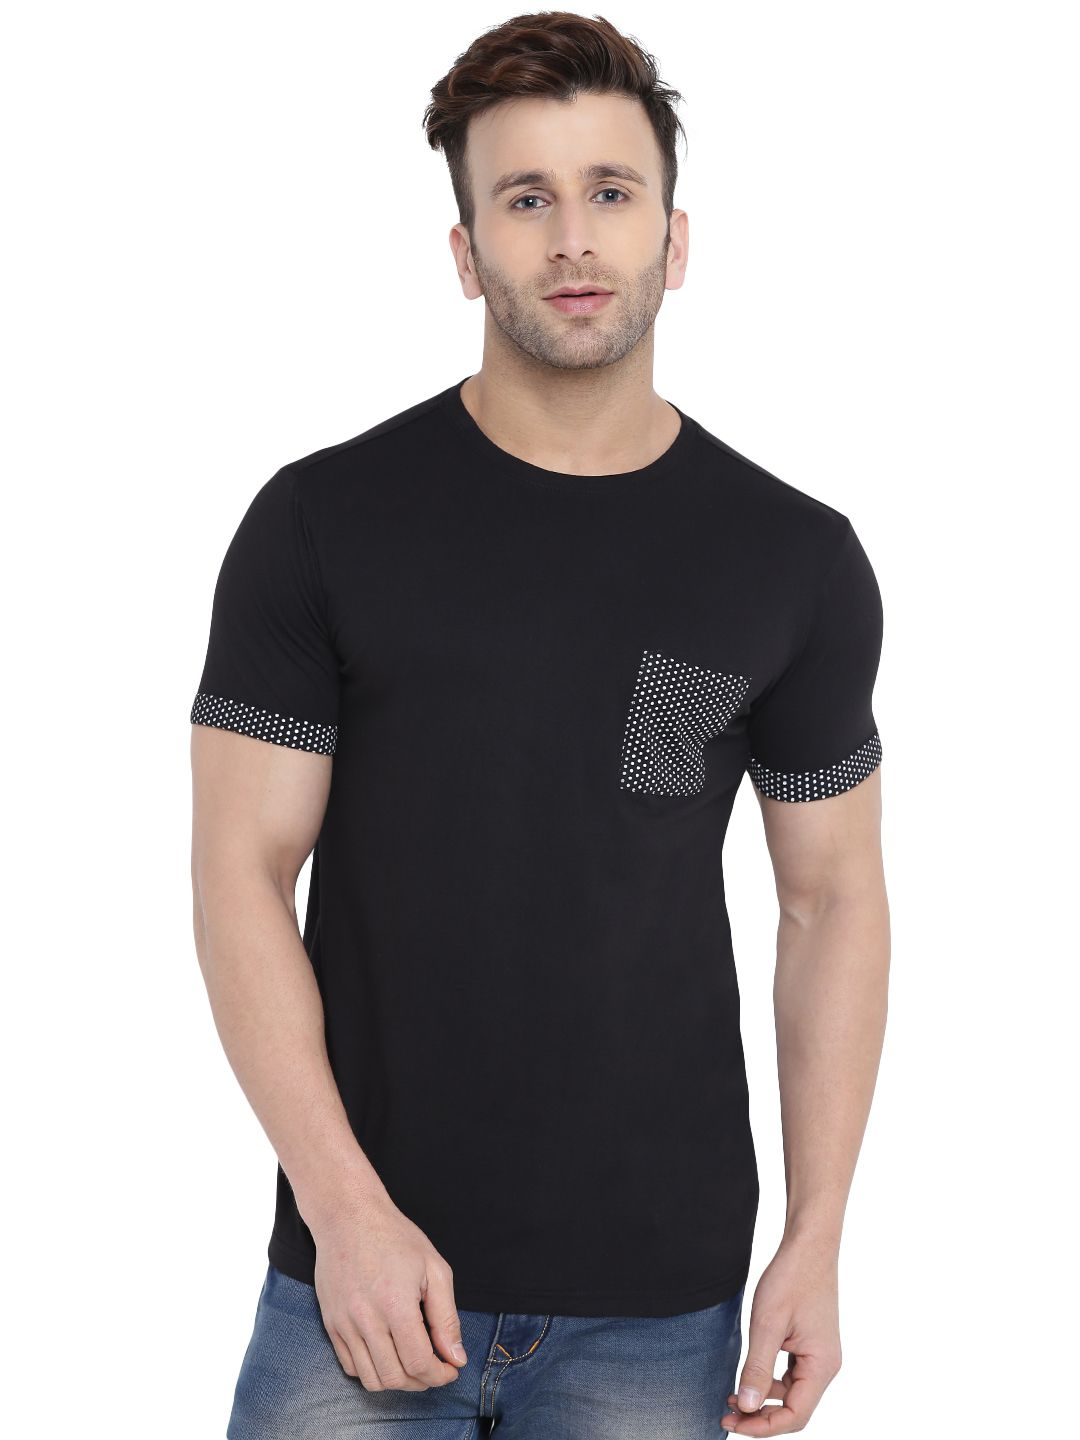 Gritstones Black Round T-Shirt Pack of 1